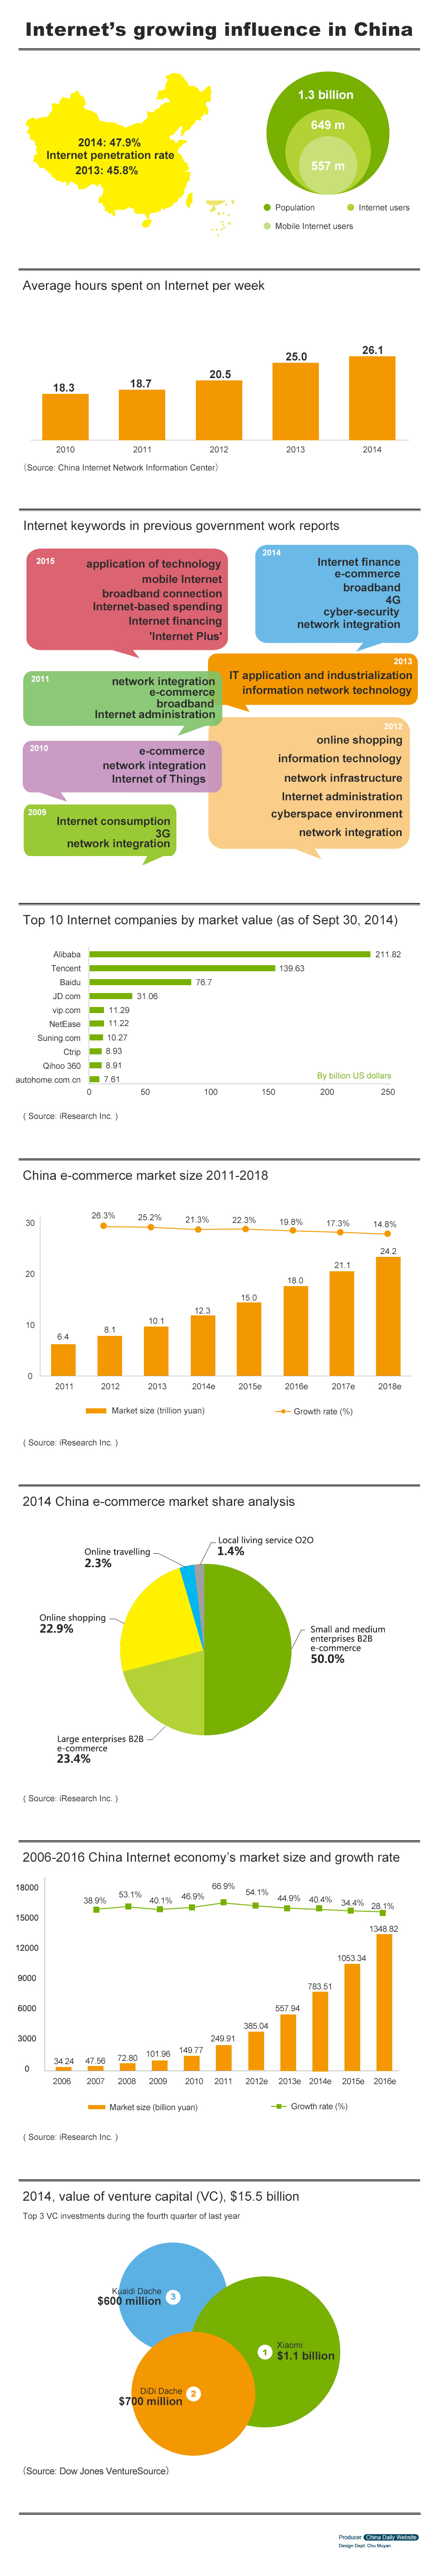 Infographic: Internet's growing influence in China